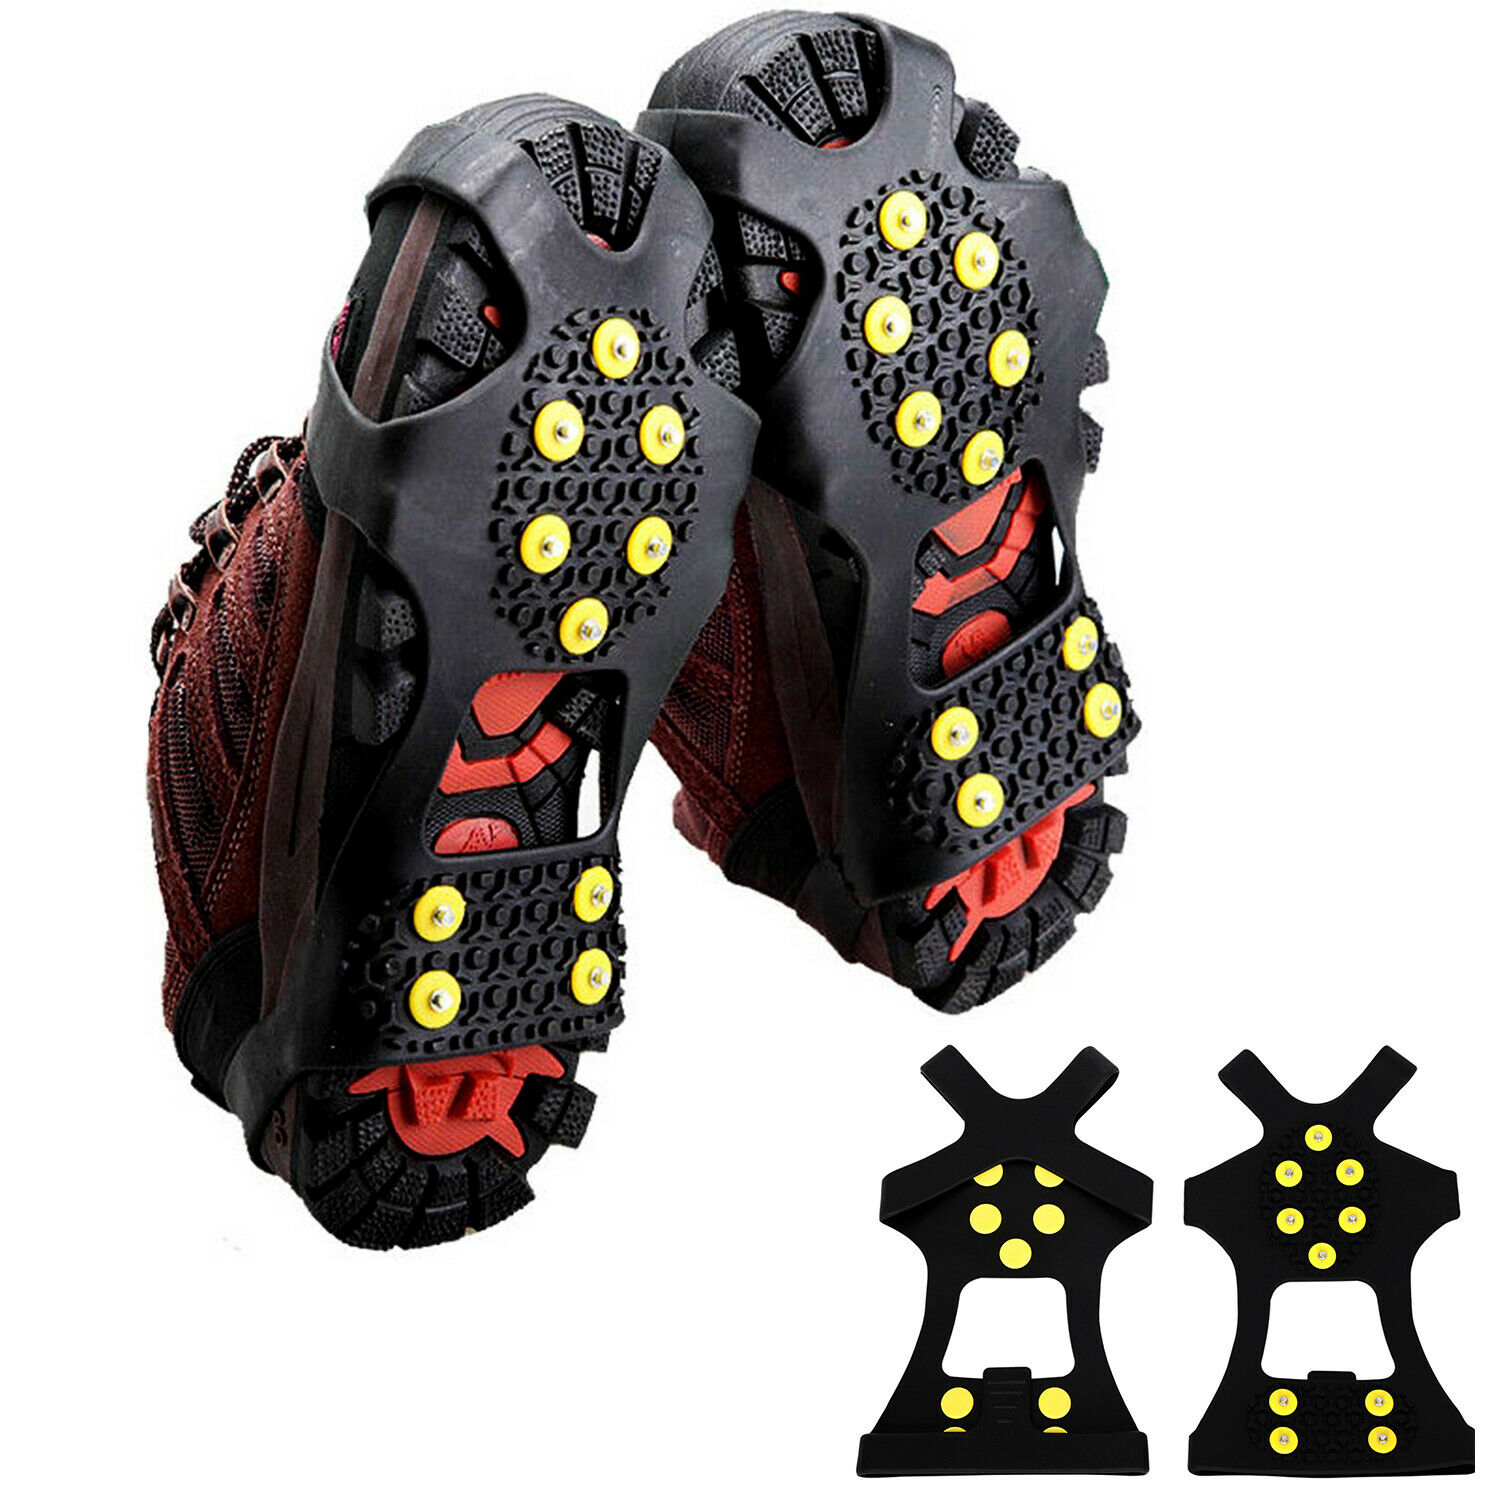 Wanshop Ice Snow Grips Replacements Ice Snow Cleat Shoe Boot Traction Cleat Spikes Anti Slip Steel Studs Crampon for Winter Outdoor Hiking Climbing Fishing